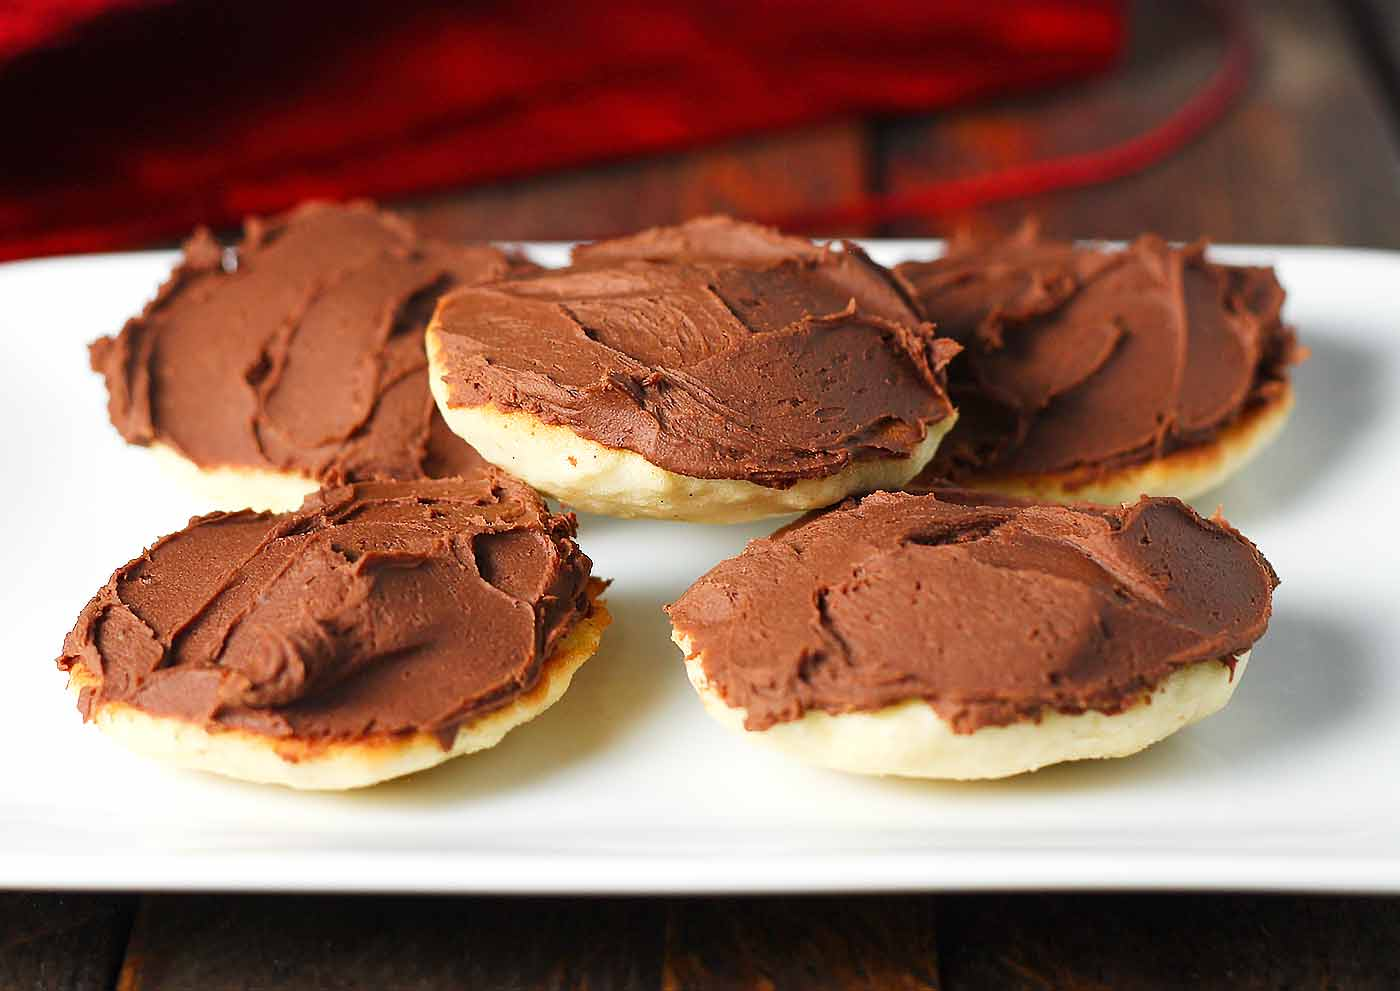 A stack of five Berger Cookies on a white plate